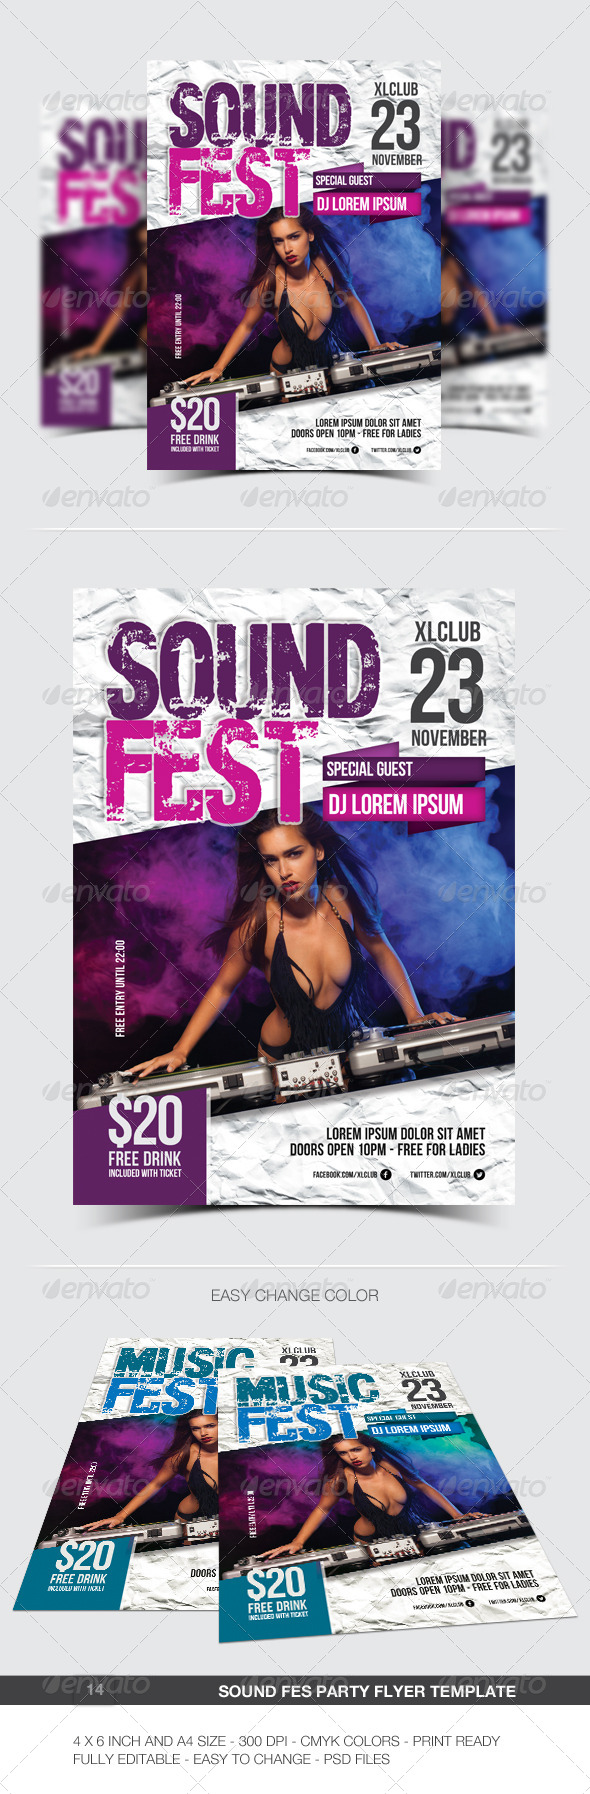 GraphicRiver Sound Fest Party Flyer Poster 14 6959809